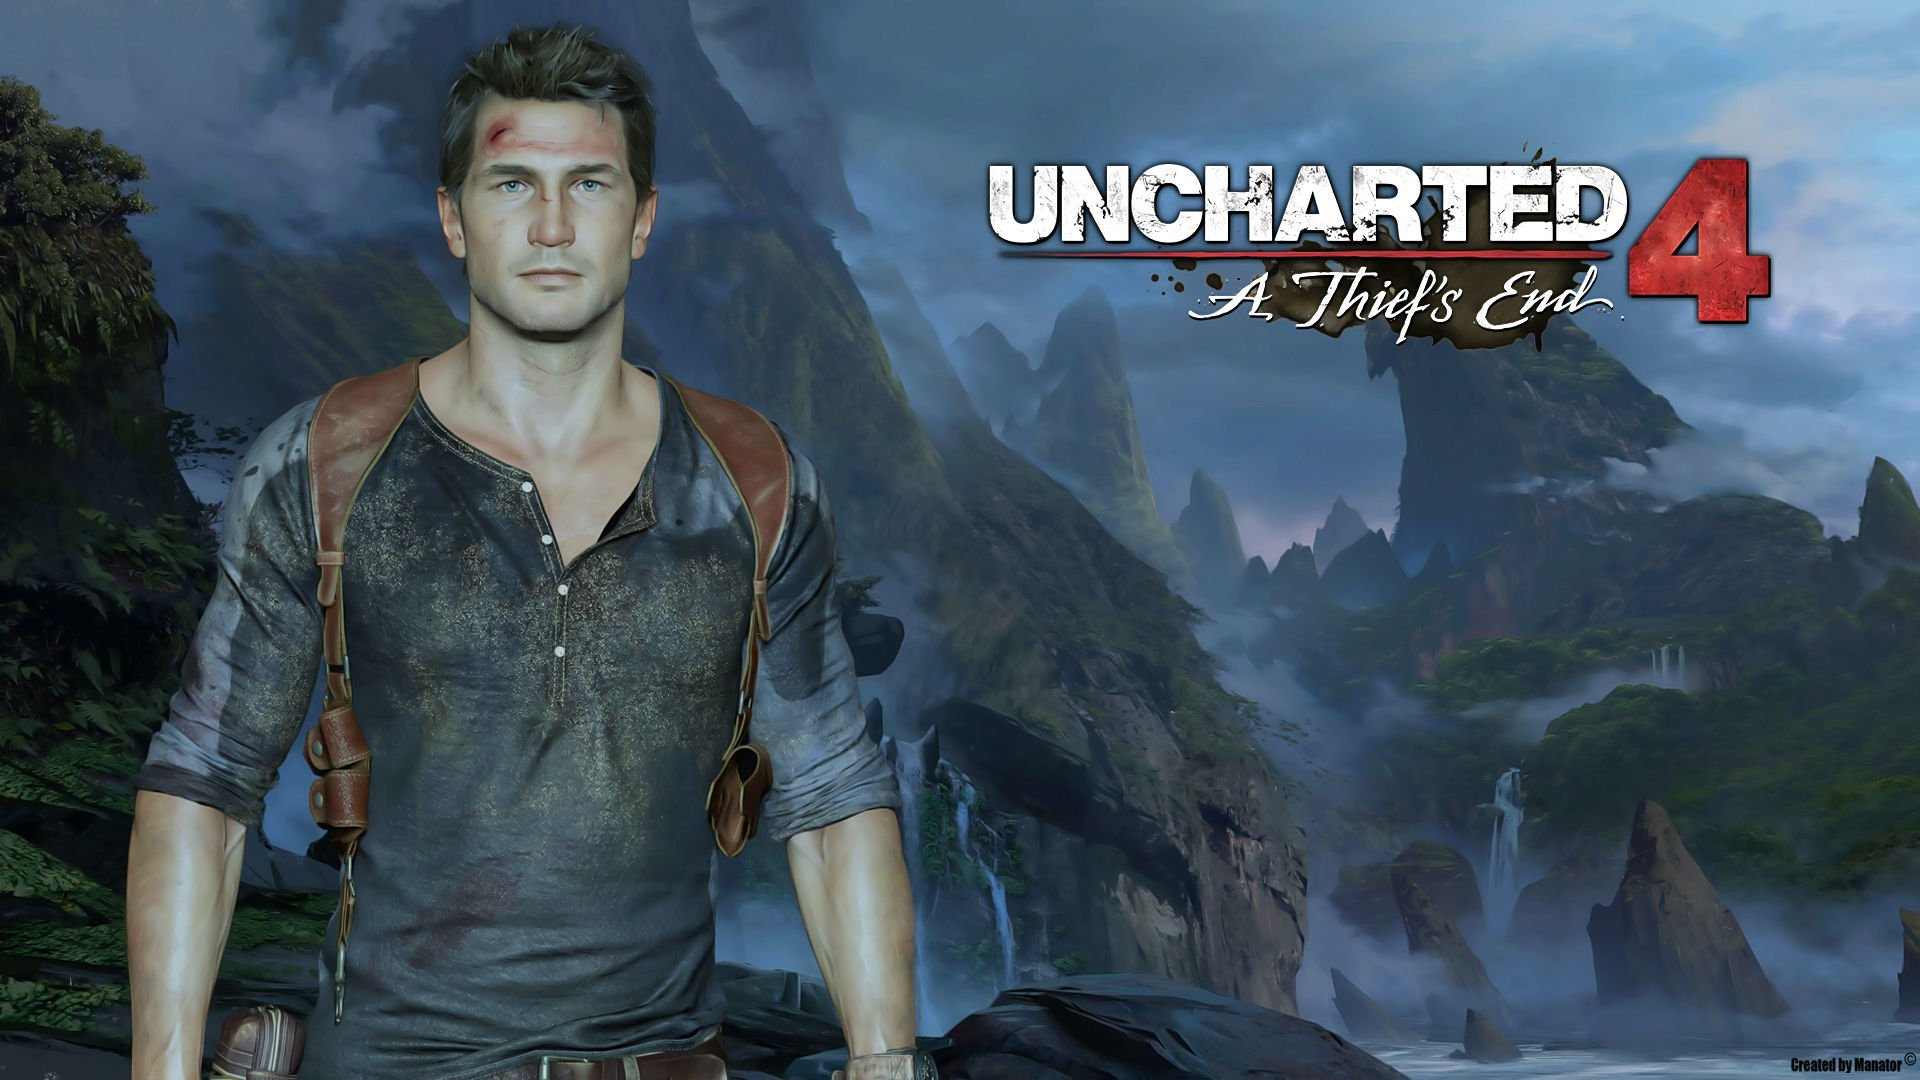 UNCHARTED 4 THIEFS END action adventure tps shooter platform poster 1920x1080